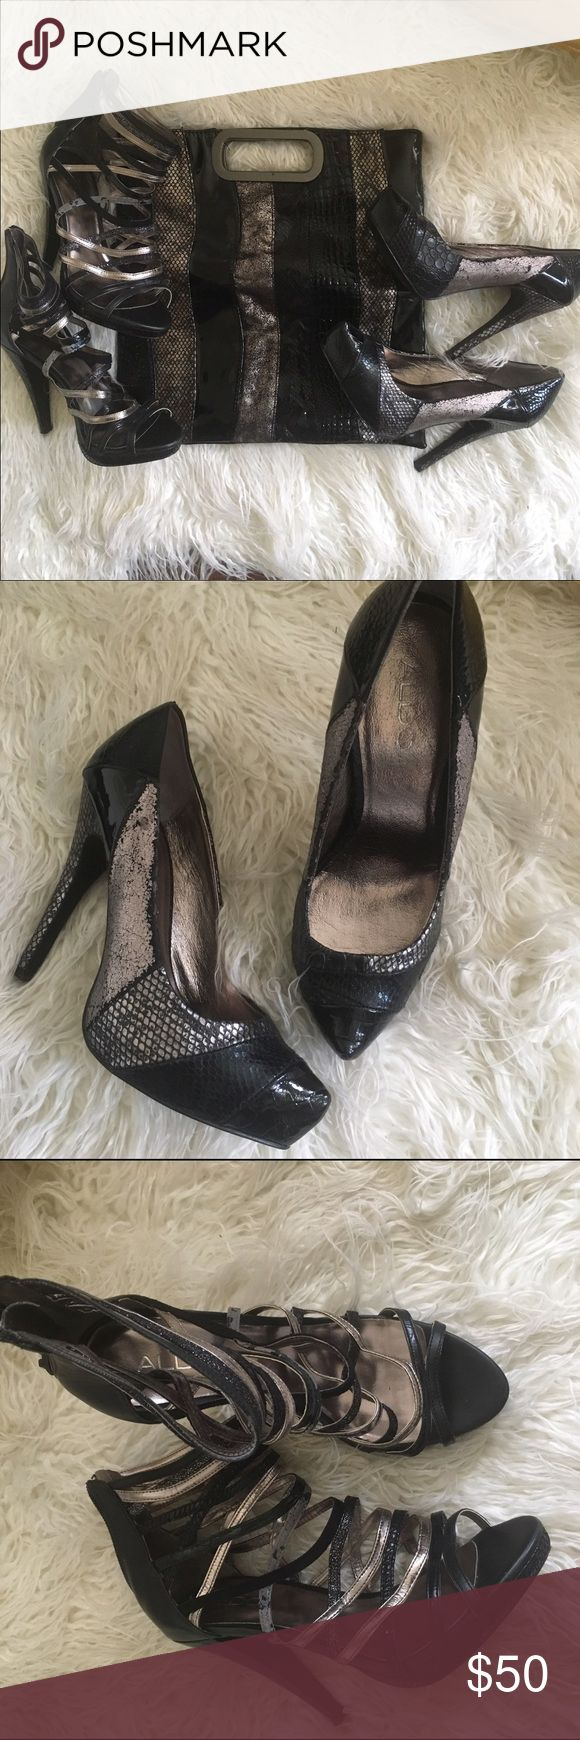 2 pair of Aldo heels & matching fold over clutch. Gently worn Aldo heels size 38 with matching fold over clutch purse. Sold as a bundle only. Aldo Other